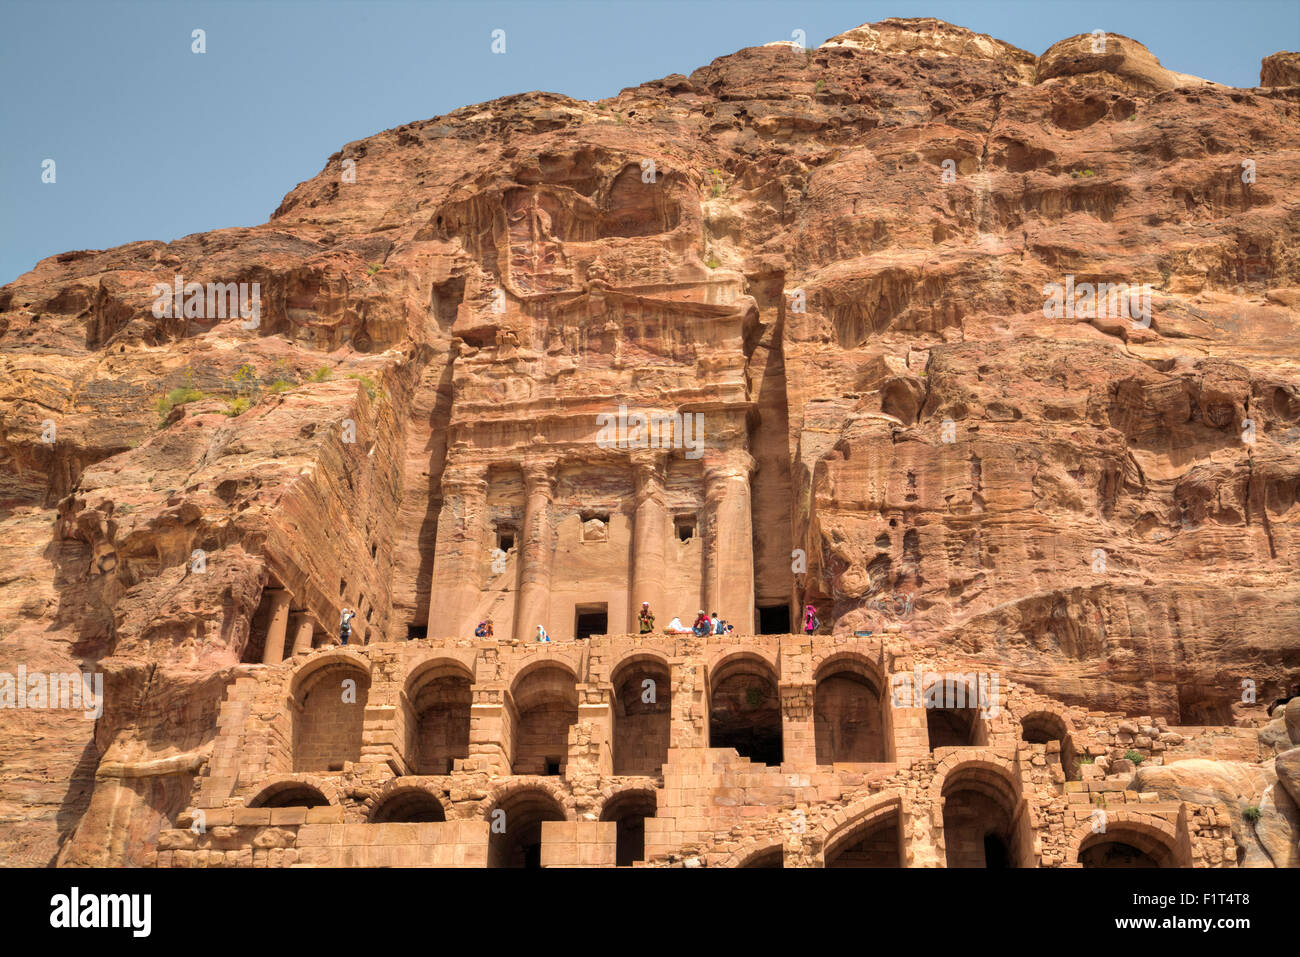 Urn Tomb, Royal Tombs, Petra, UNESCO World Heritage Site, Jordan, Middle East Stock Photo